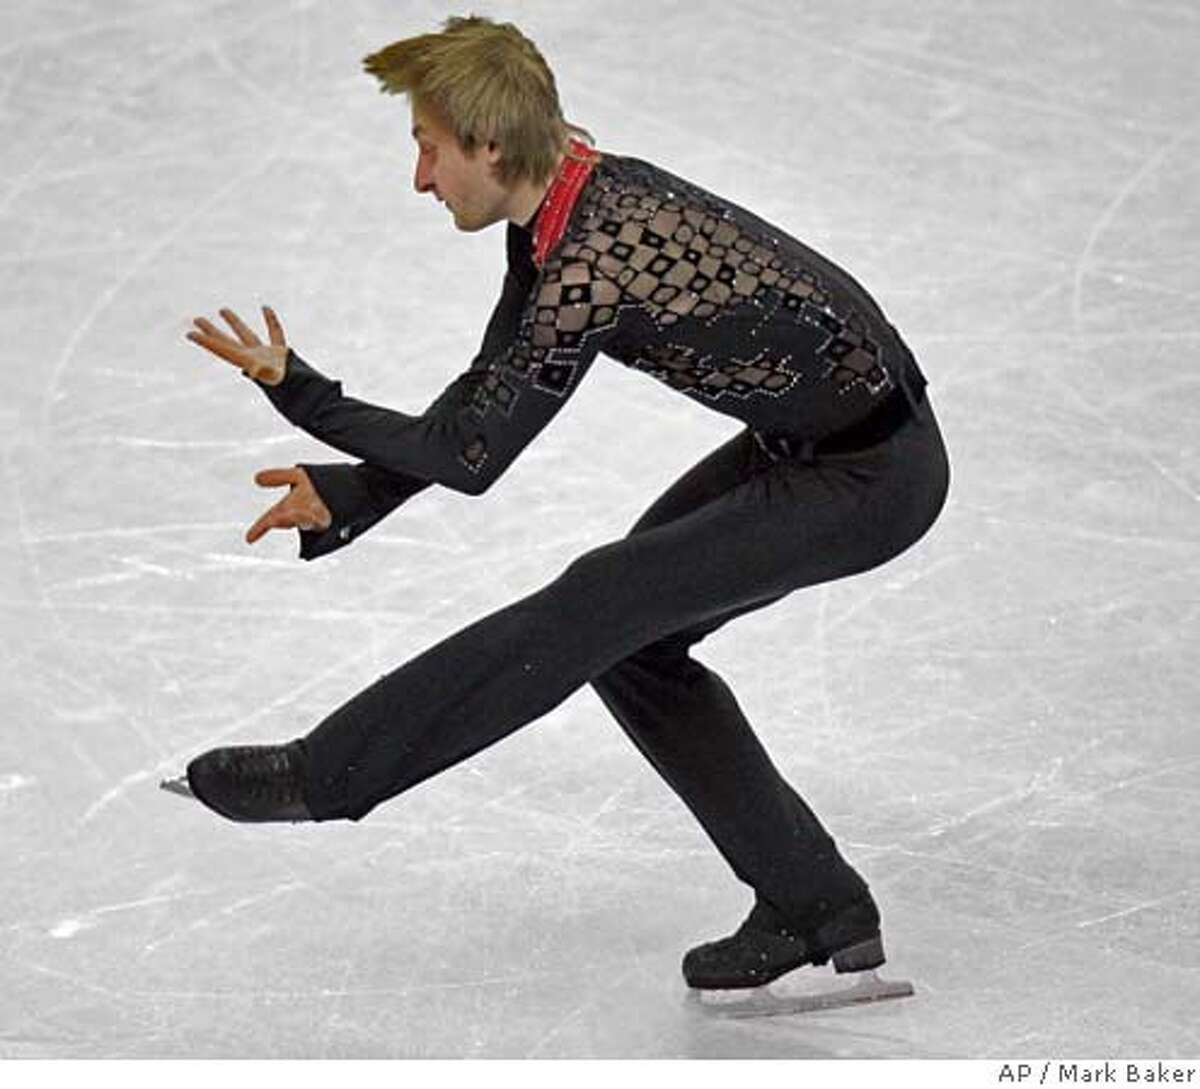 Evgeni Plushenko, of Russia, performs during his routine in the Men's Free Skate in figure skating at the Turin 2006 Winter Olympic Games in Turin, Italy on Thursday, Feb. 16, 2006. (AP Photo/Mark Baker)